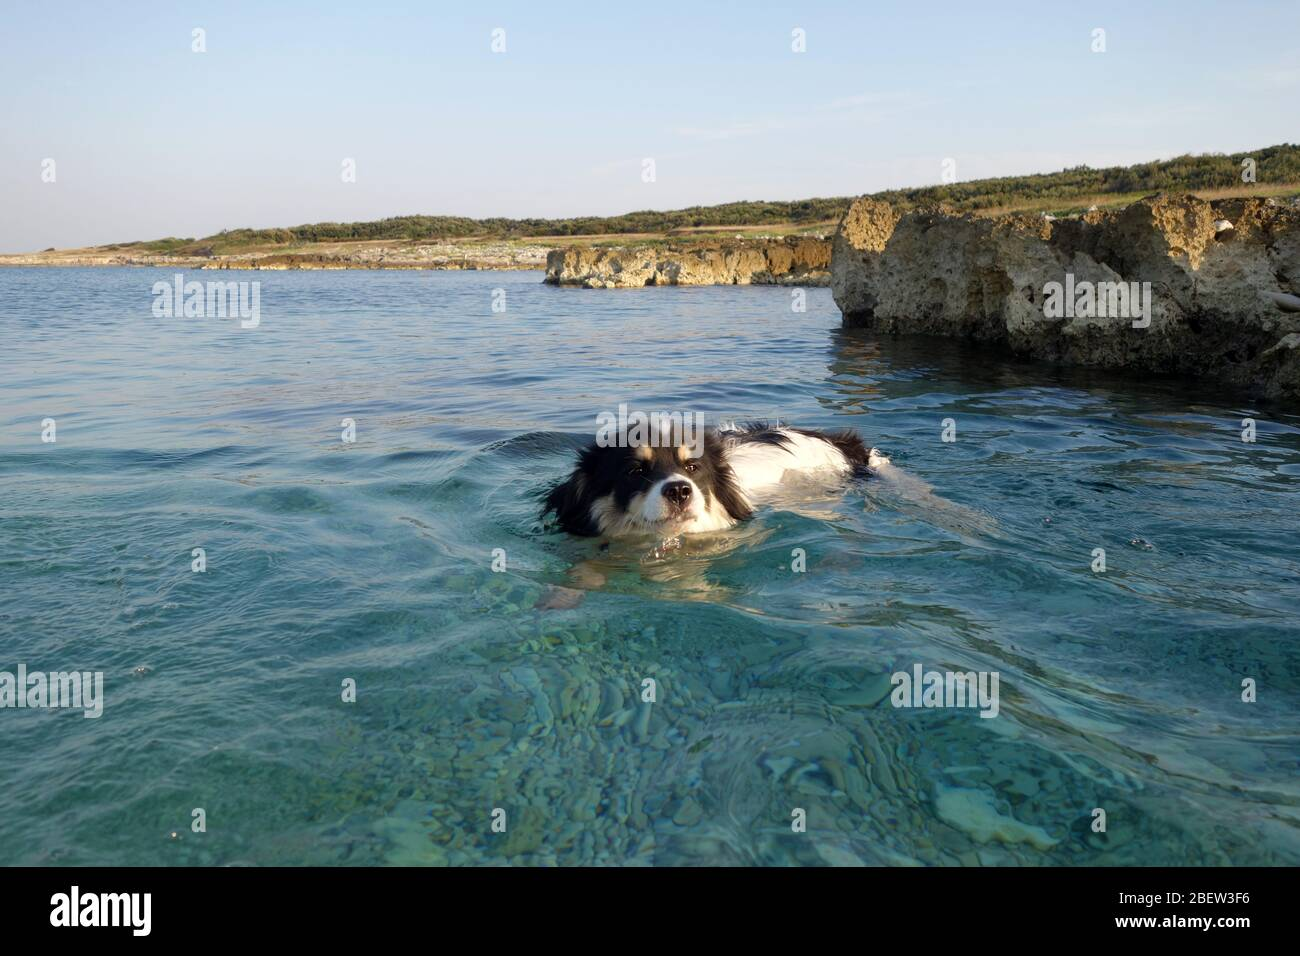 HUND AM MEER . DOG IN THE SEA Stock Photo